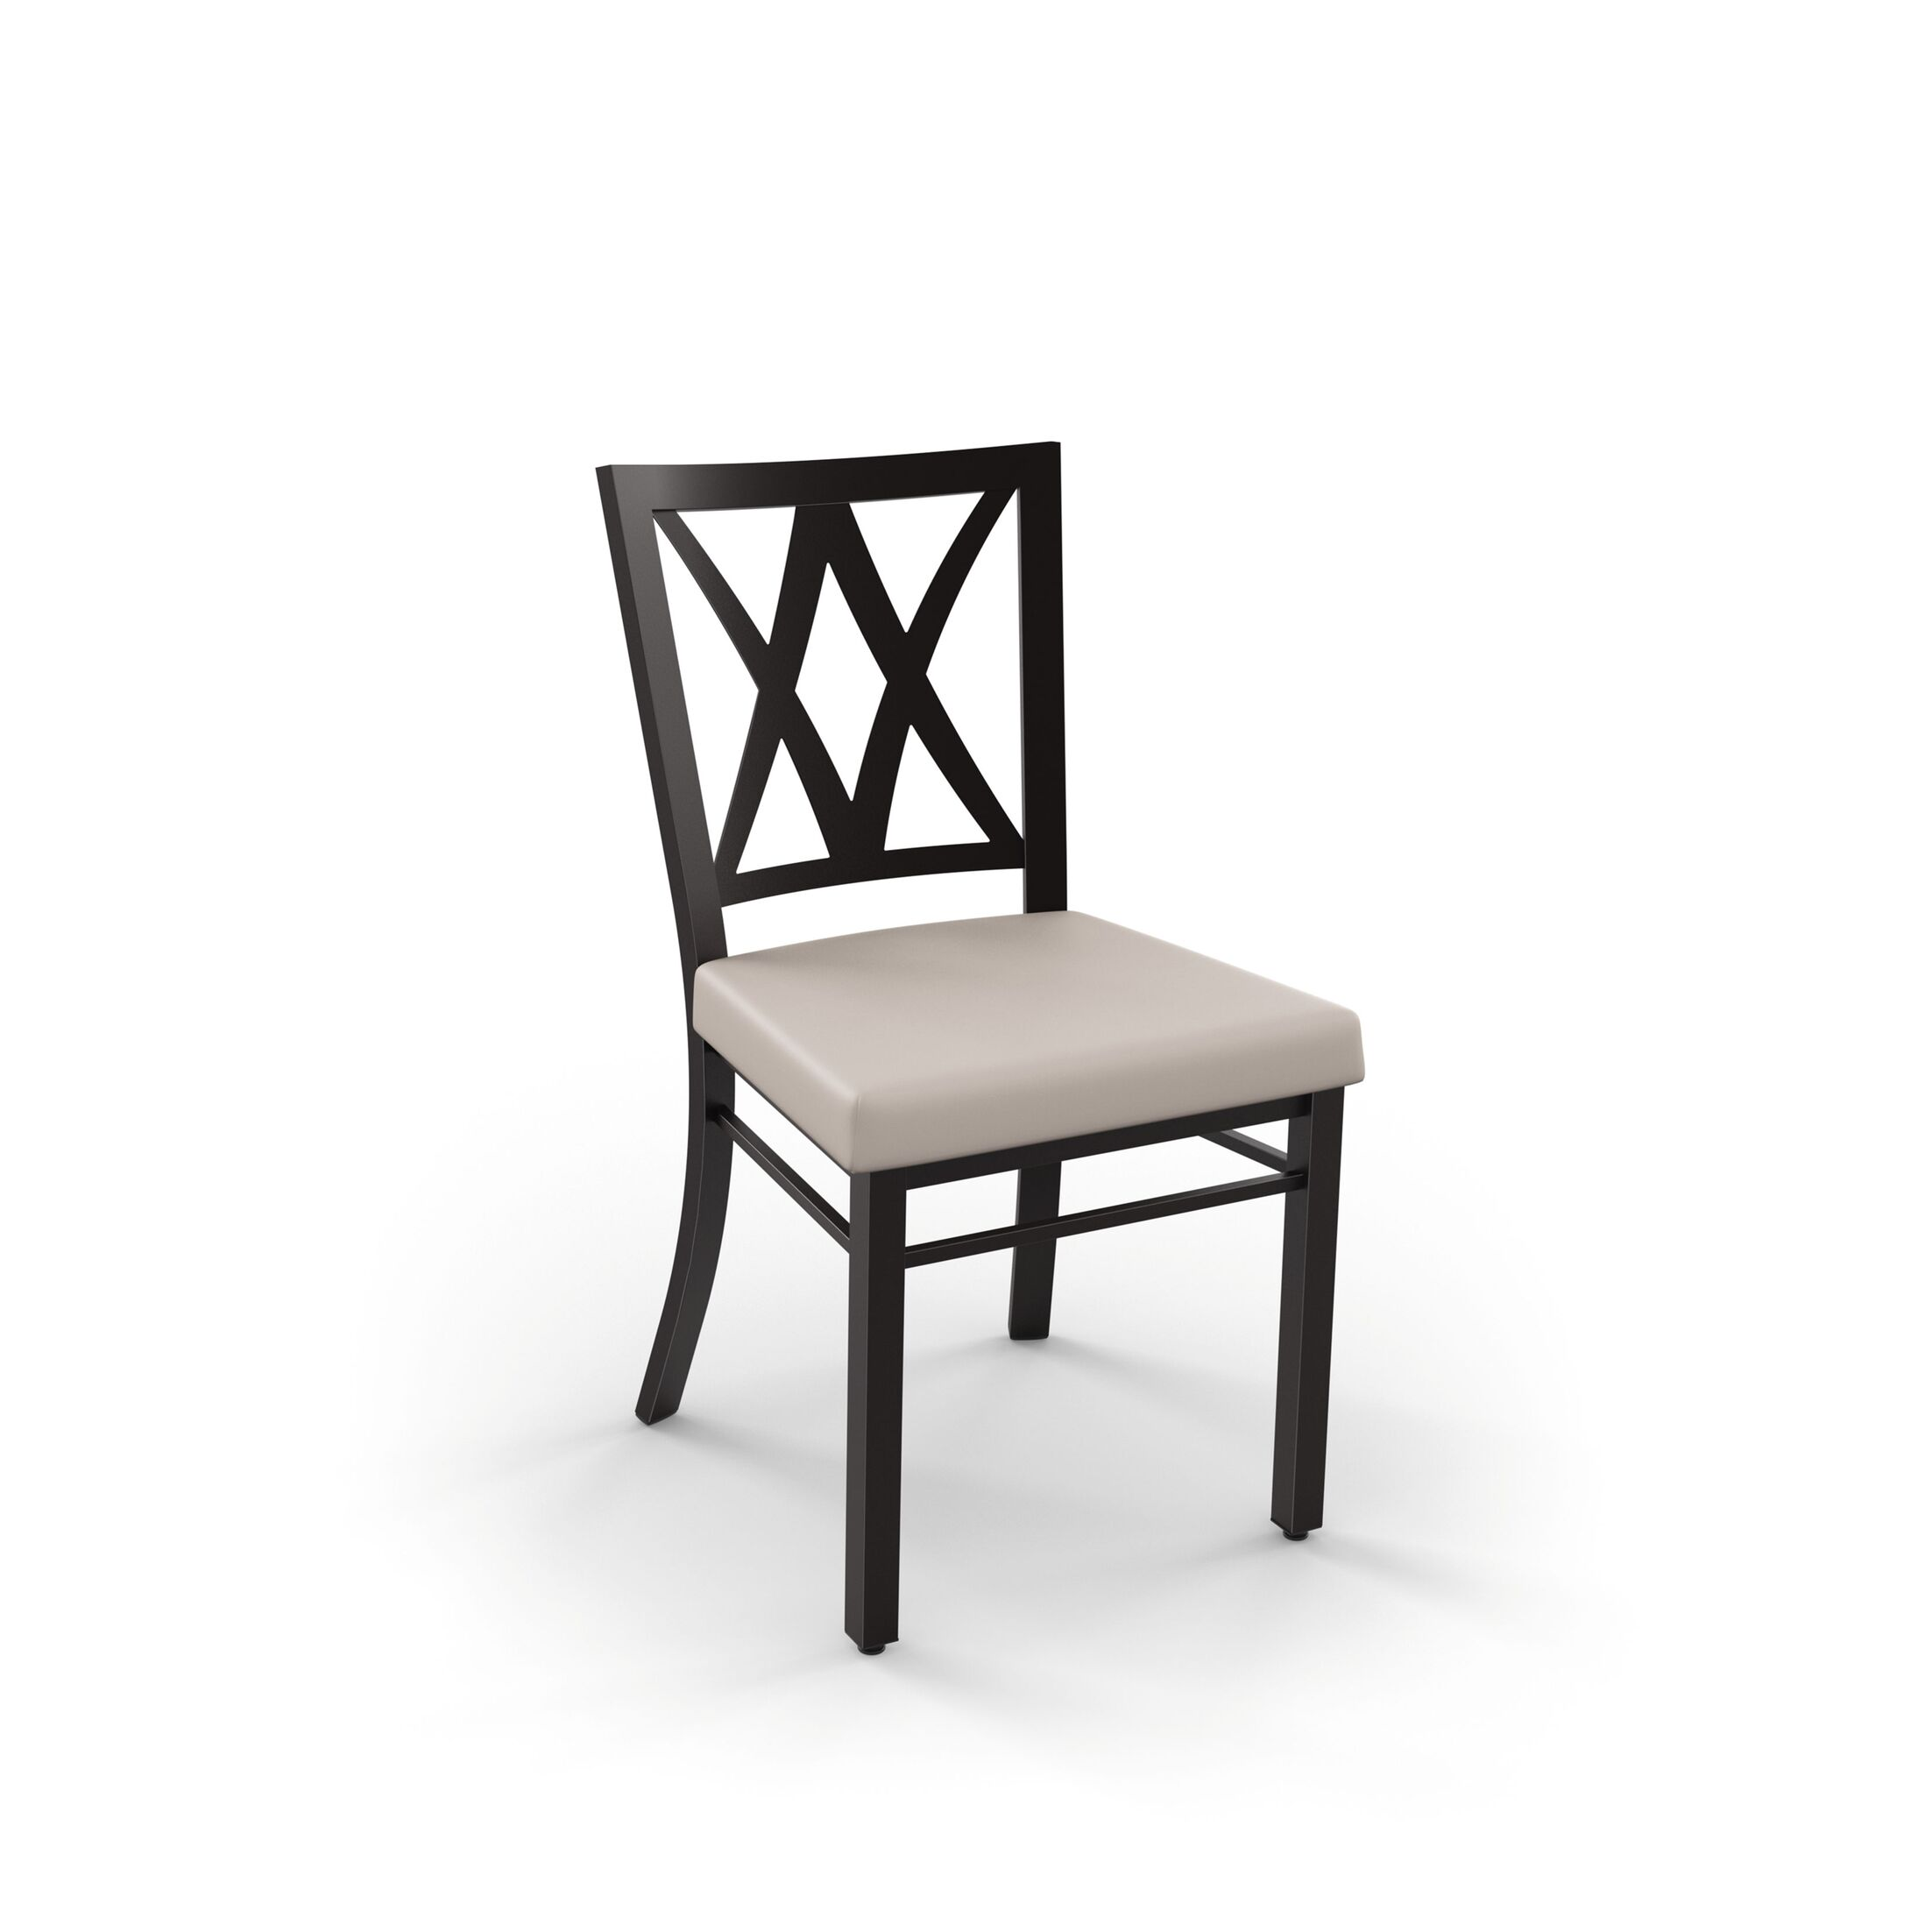 Micheal 7 Piece Extendable Dining Set Table Top Color: Brown, Table Base Color: Black, Chair Color: Black/White